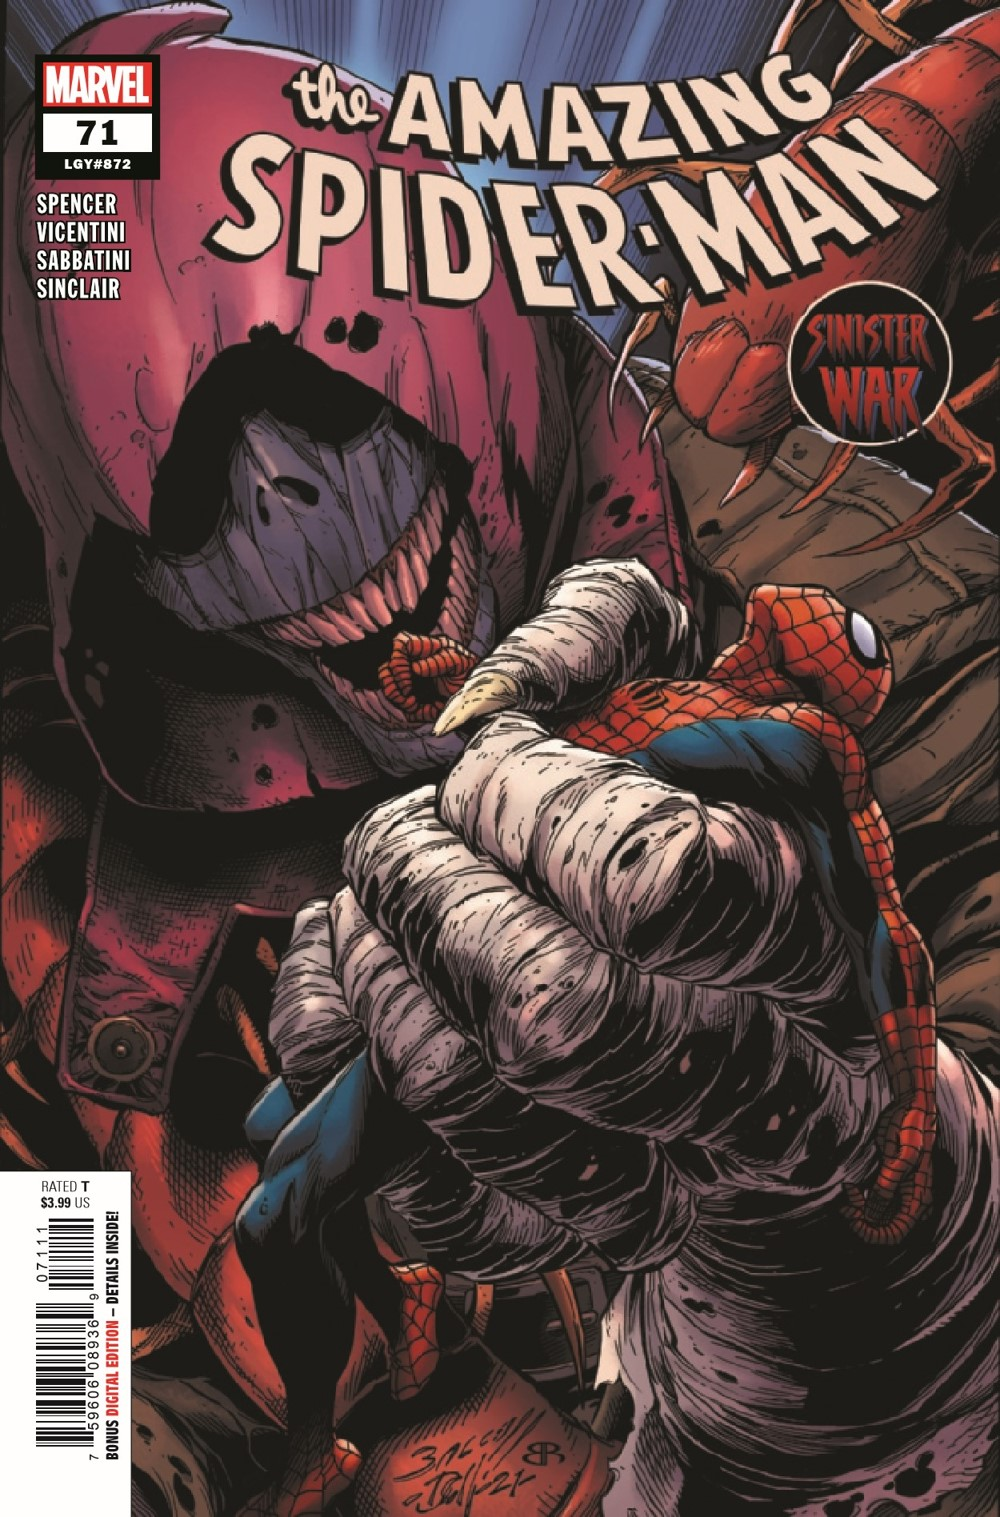 ASM2018071_Preview-1 ComicList Previews: AMAZING SPIDER-MAN #71